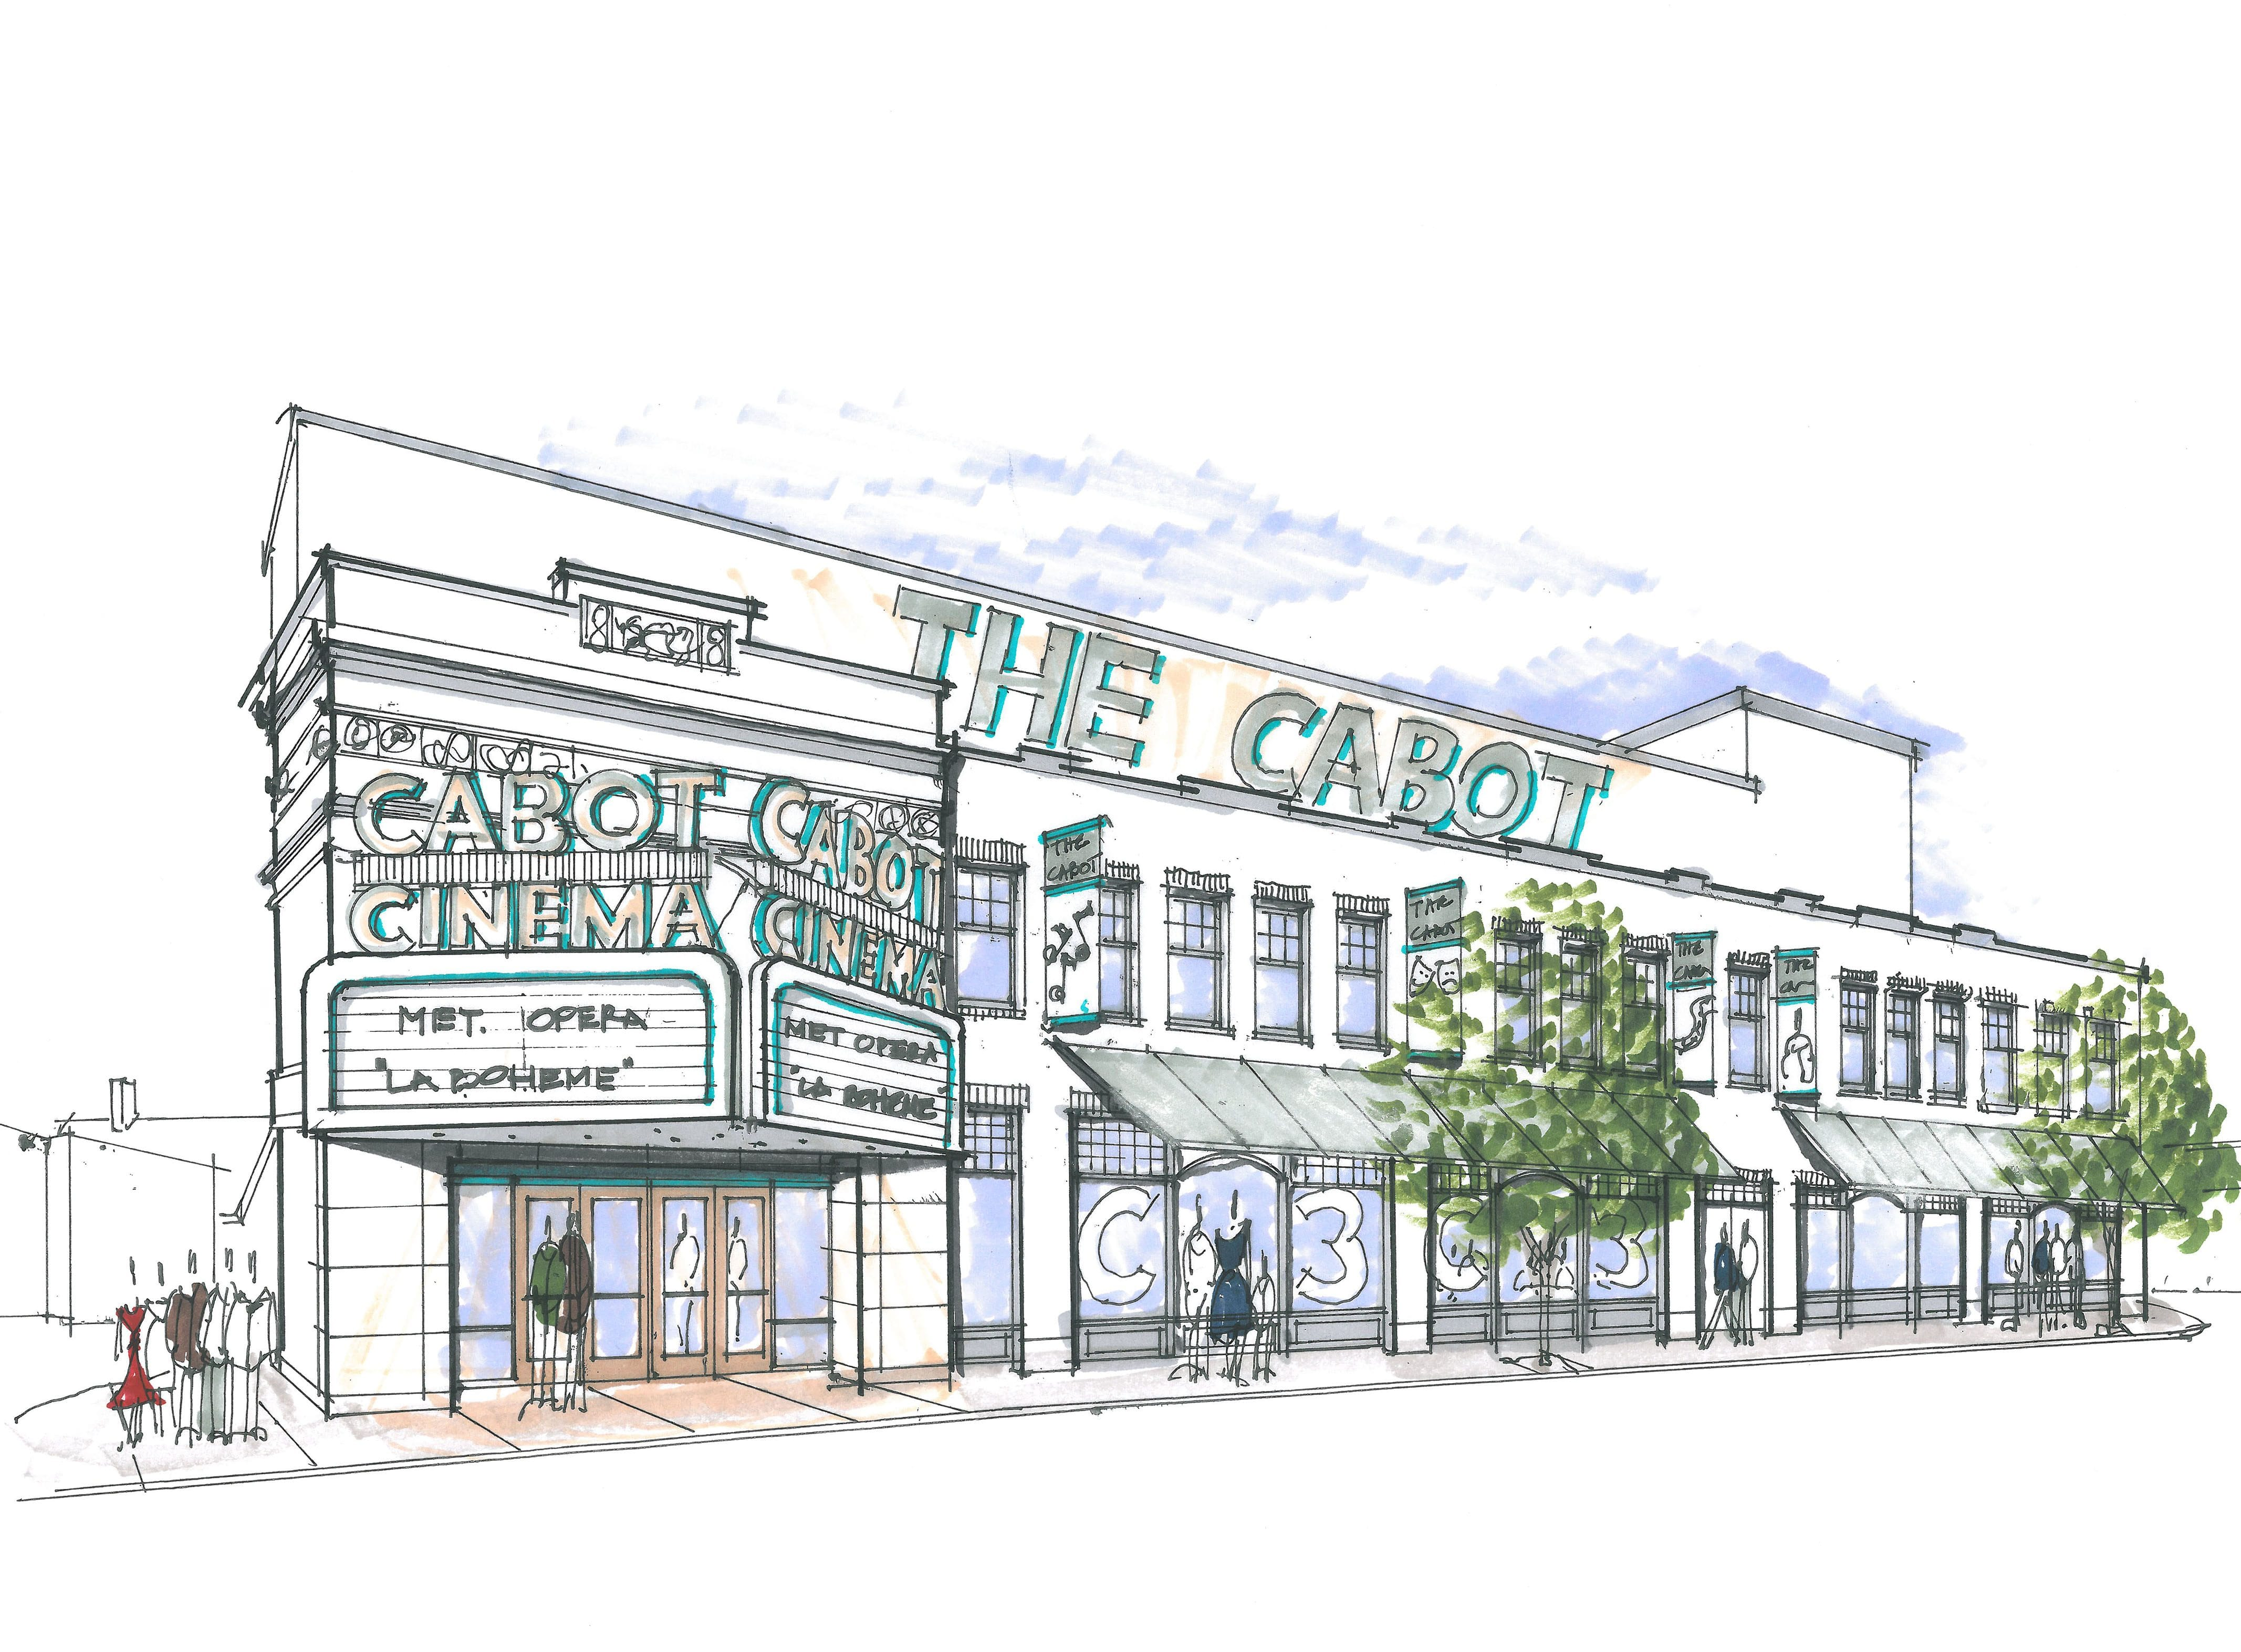 The Cabot Hero Ext Rendering